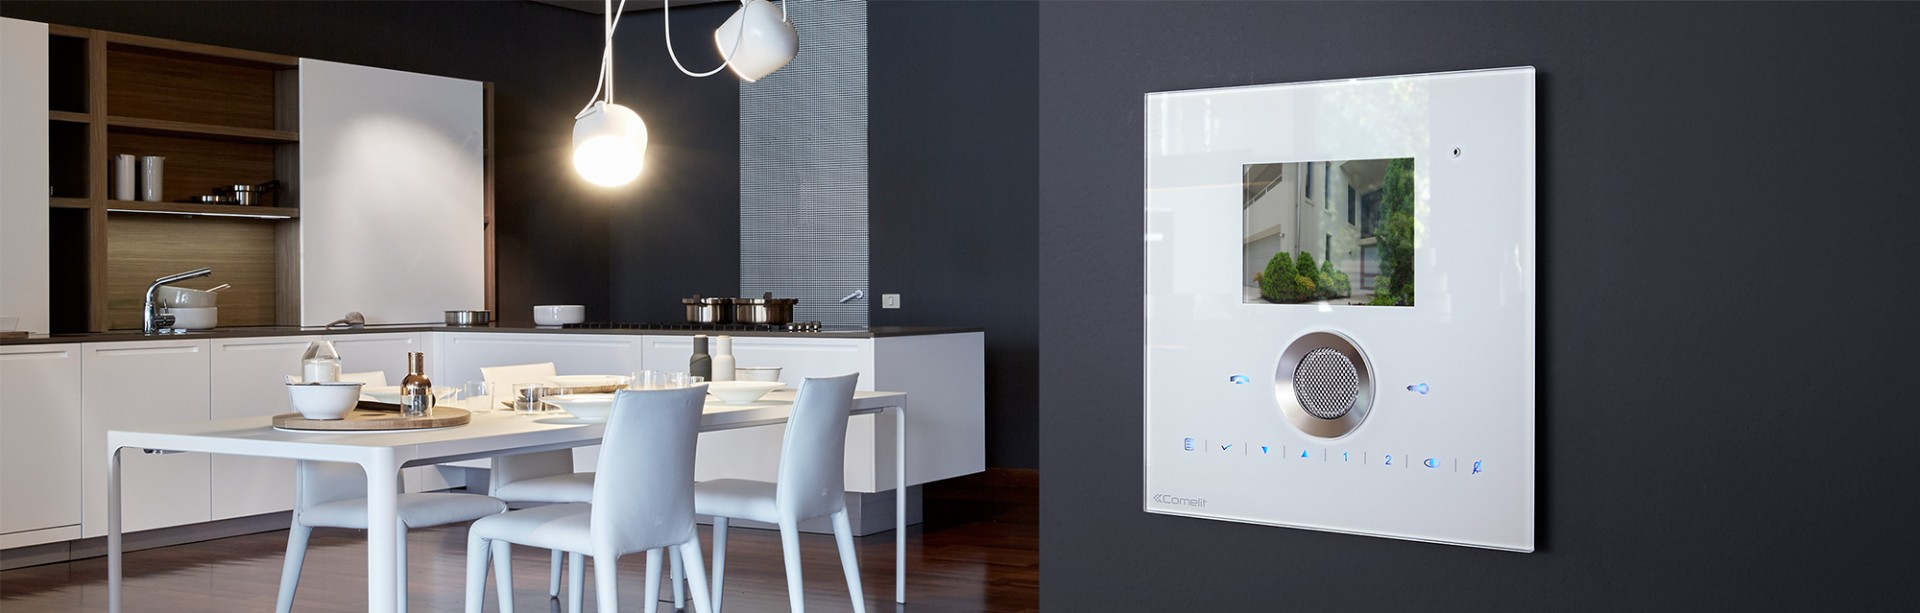 comelit planux lux indoor monitor